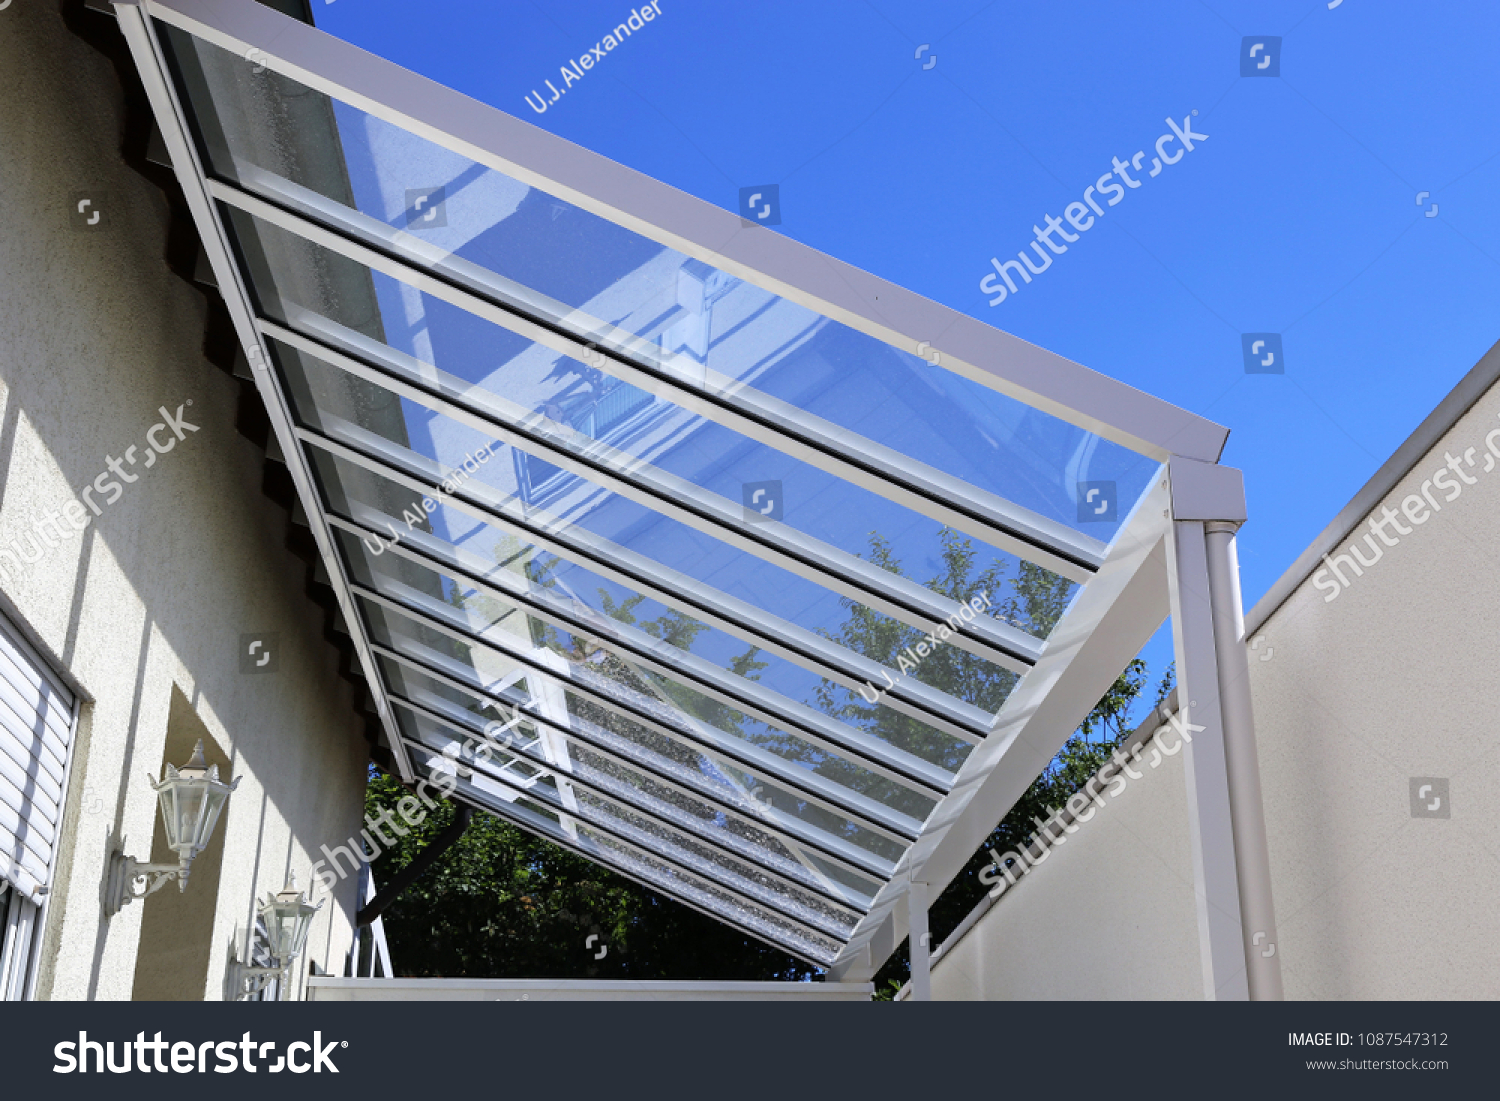 Courtyard canopy with glass #1087547312